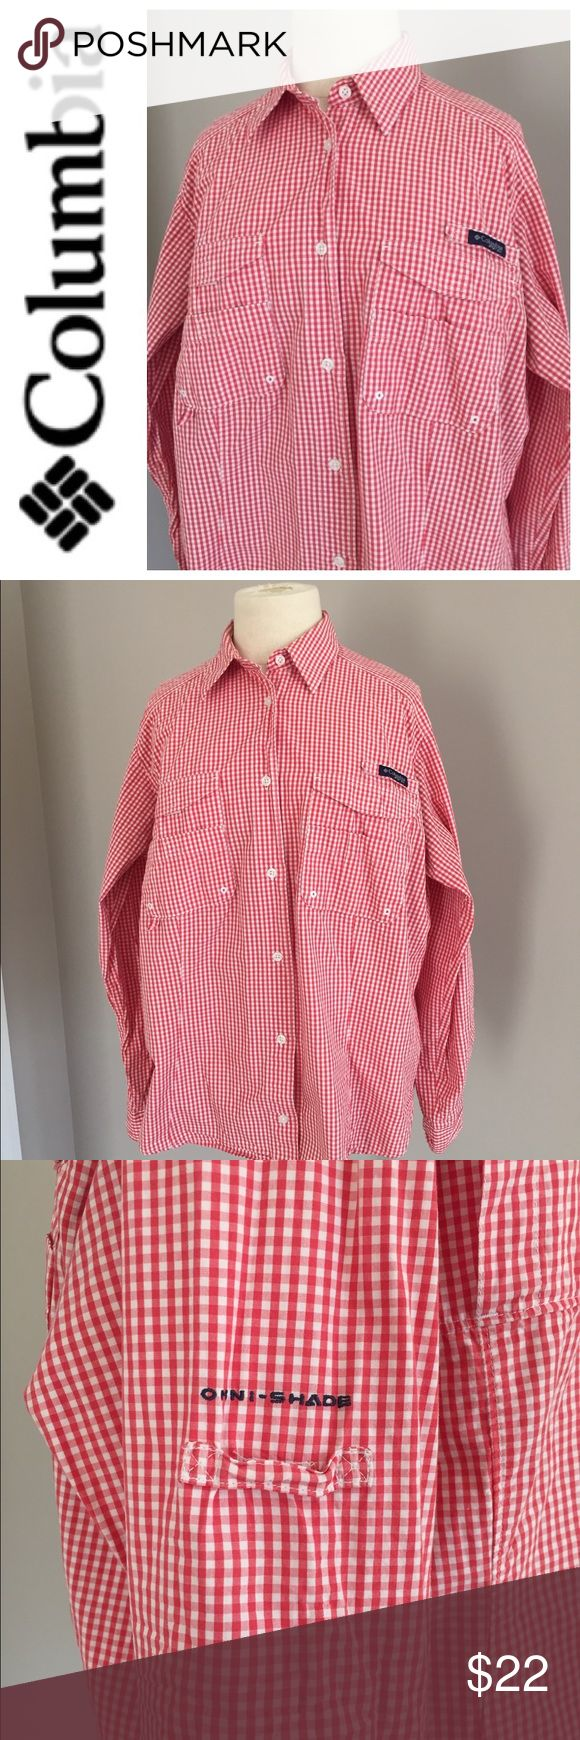 Women's Columbia PFG Long Sleeve Shirt XL This Columbia PFG Omni Shade red checked long sleeve shirt is perfect for hiking and fishing. XL. Preowned and in good clean condition. Check out my closet to save on bundles . Reasonable offers accepted. Columbia Tops